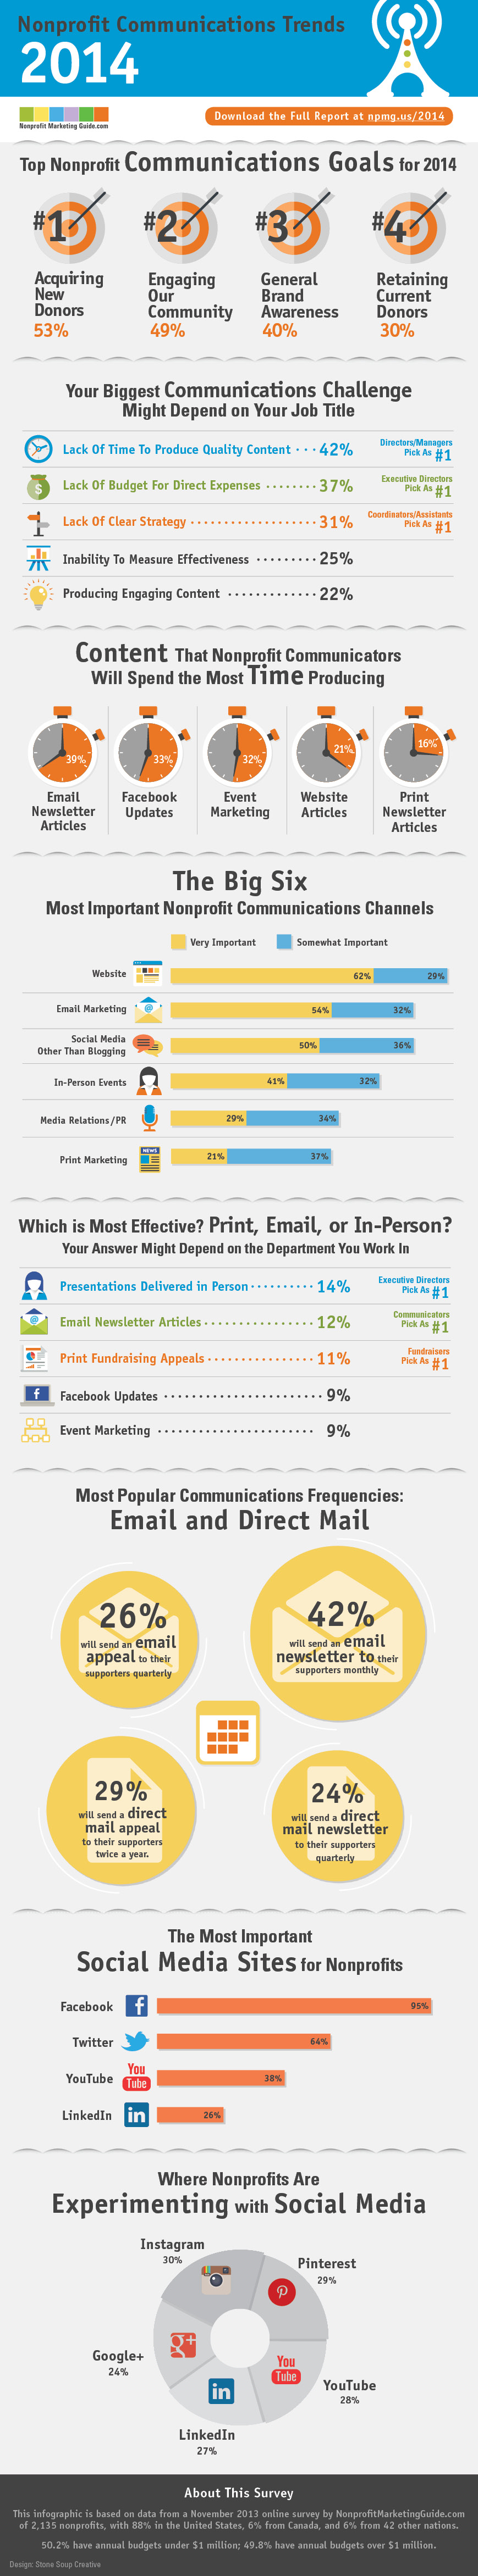 2014NonprofitCommunicationsTrends